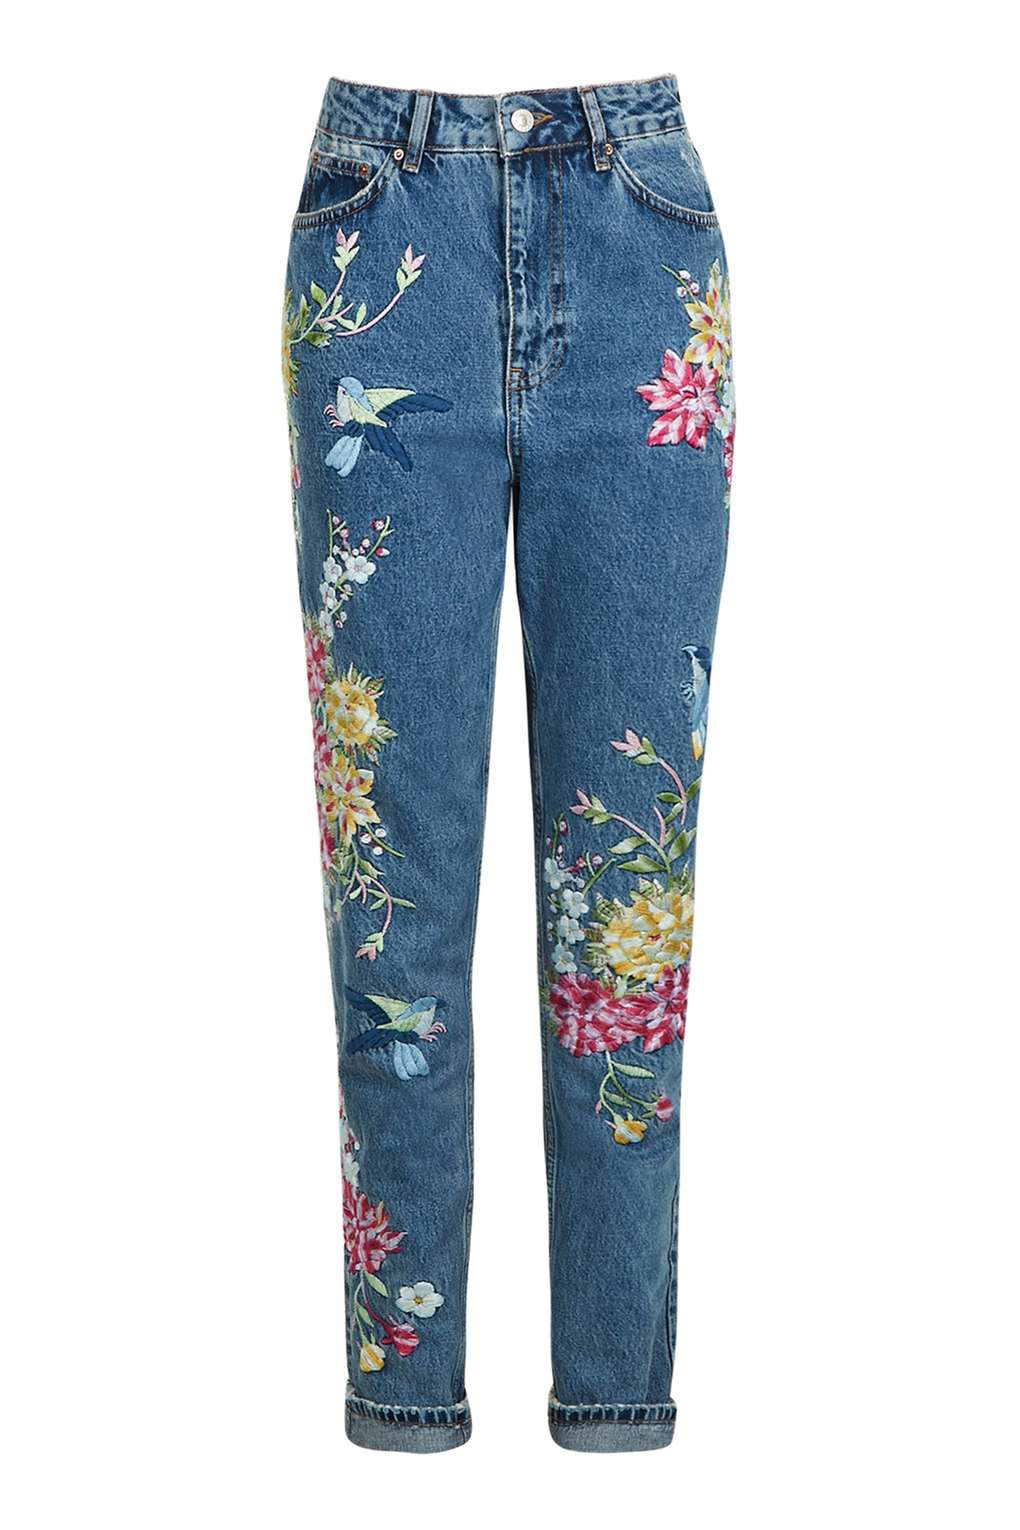 Topshop Tall Garden Embroidered Mom Jeans In Blue  Lyst